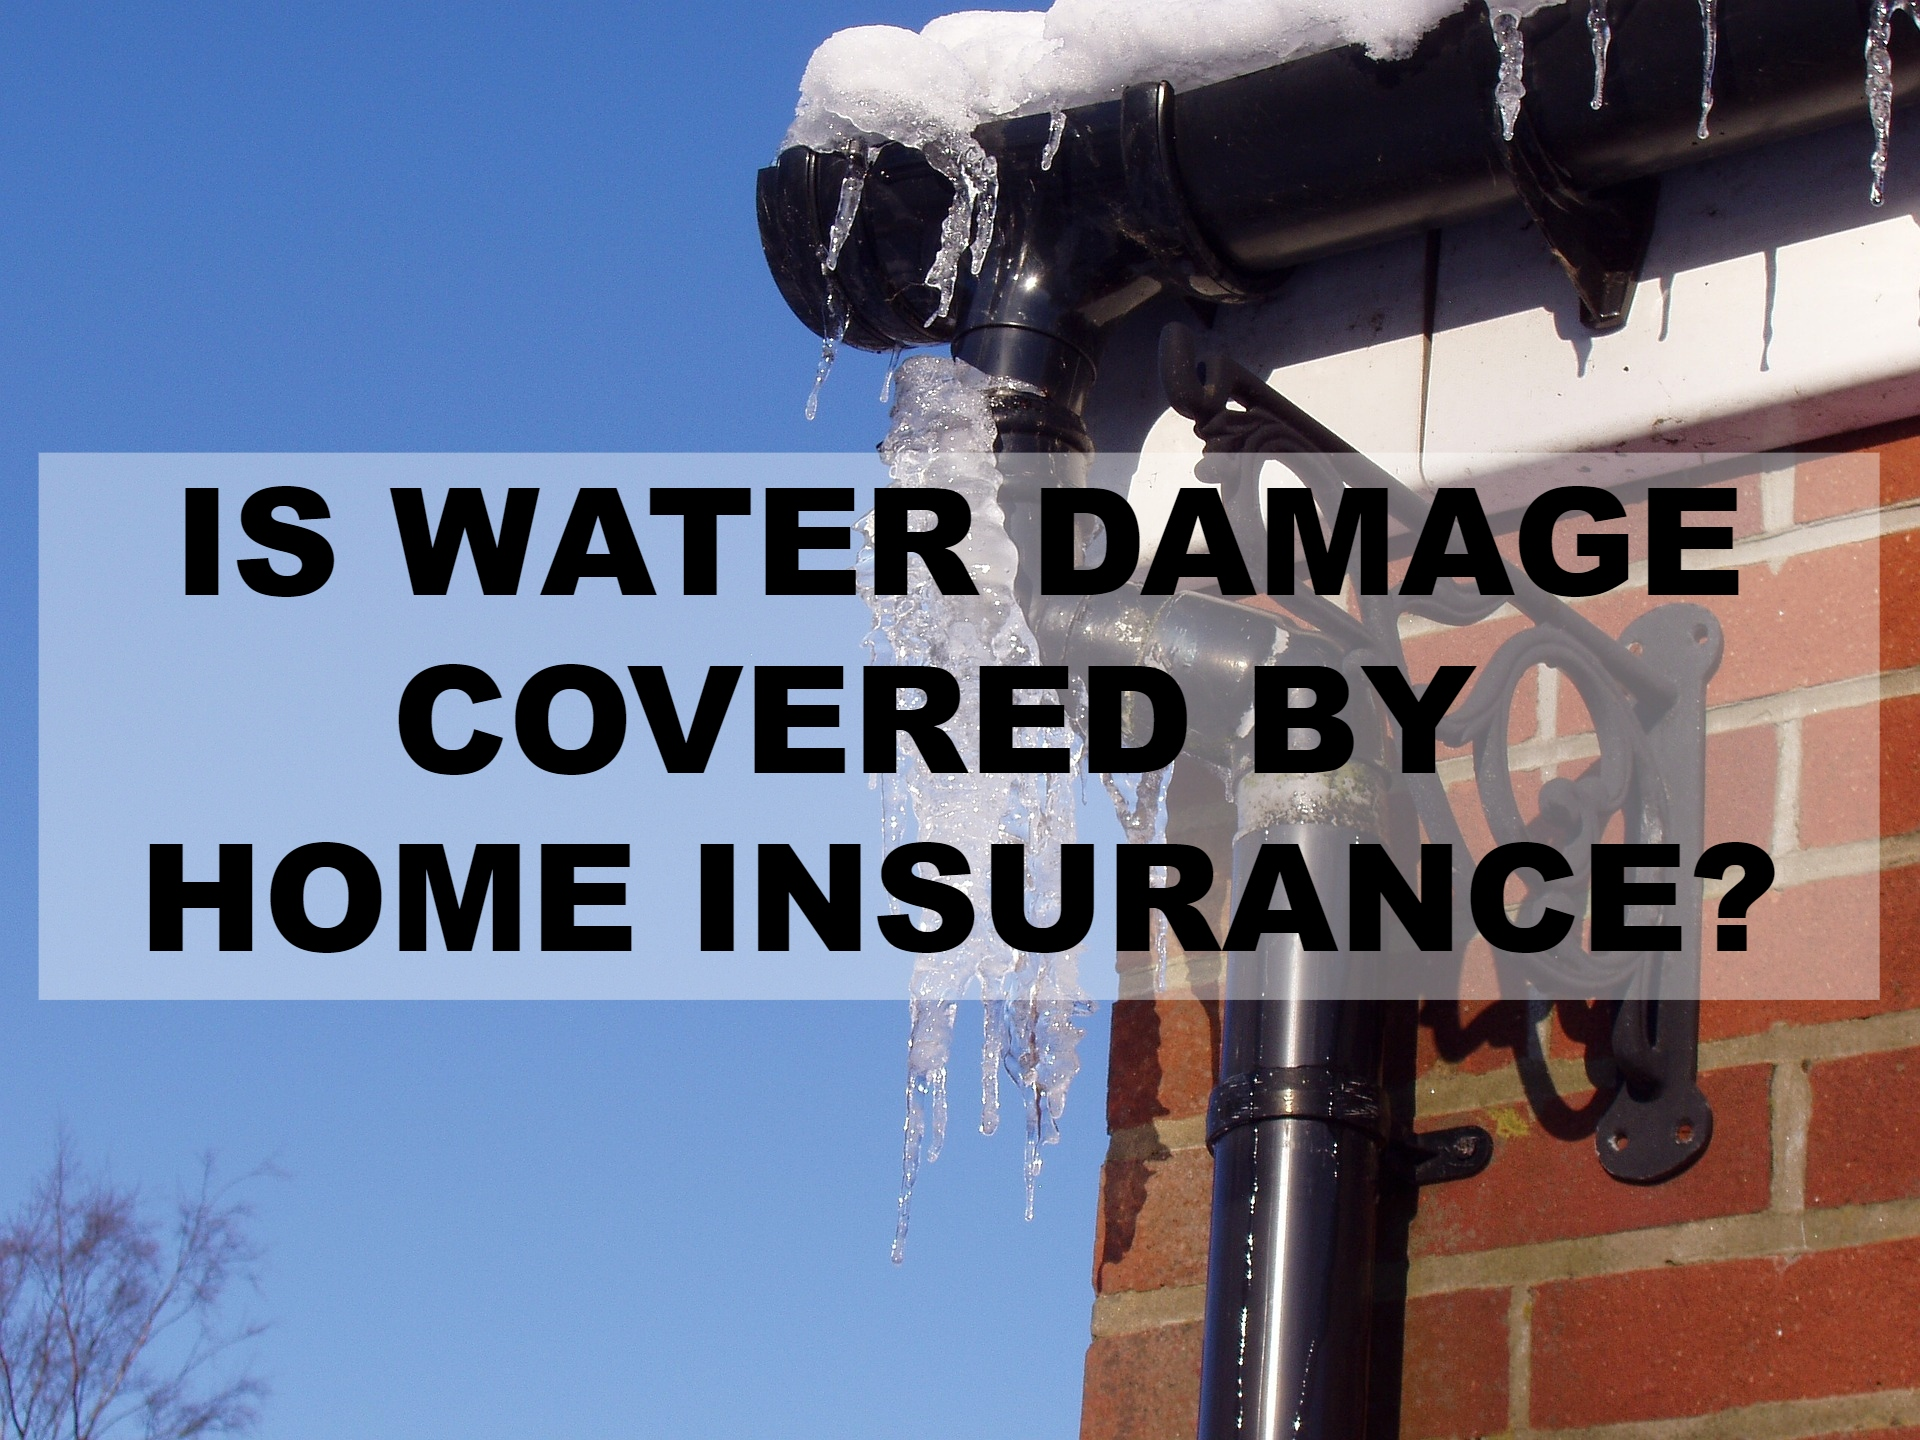 Is Water Damage Covered by Home Insurance?